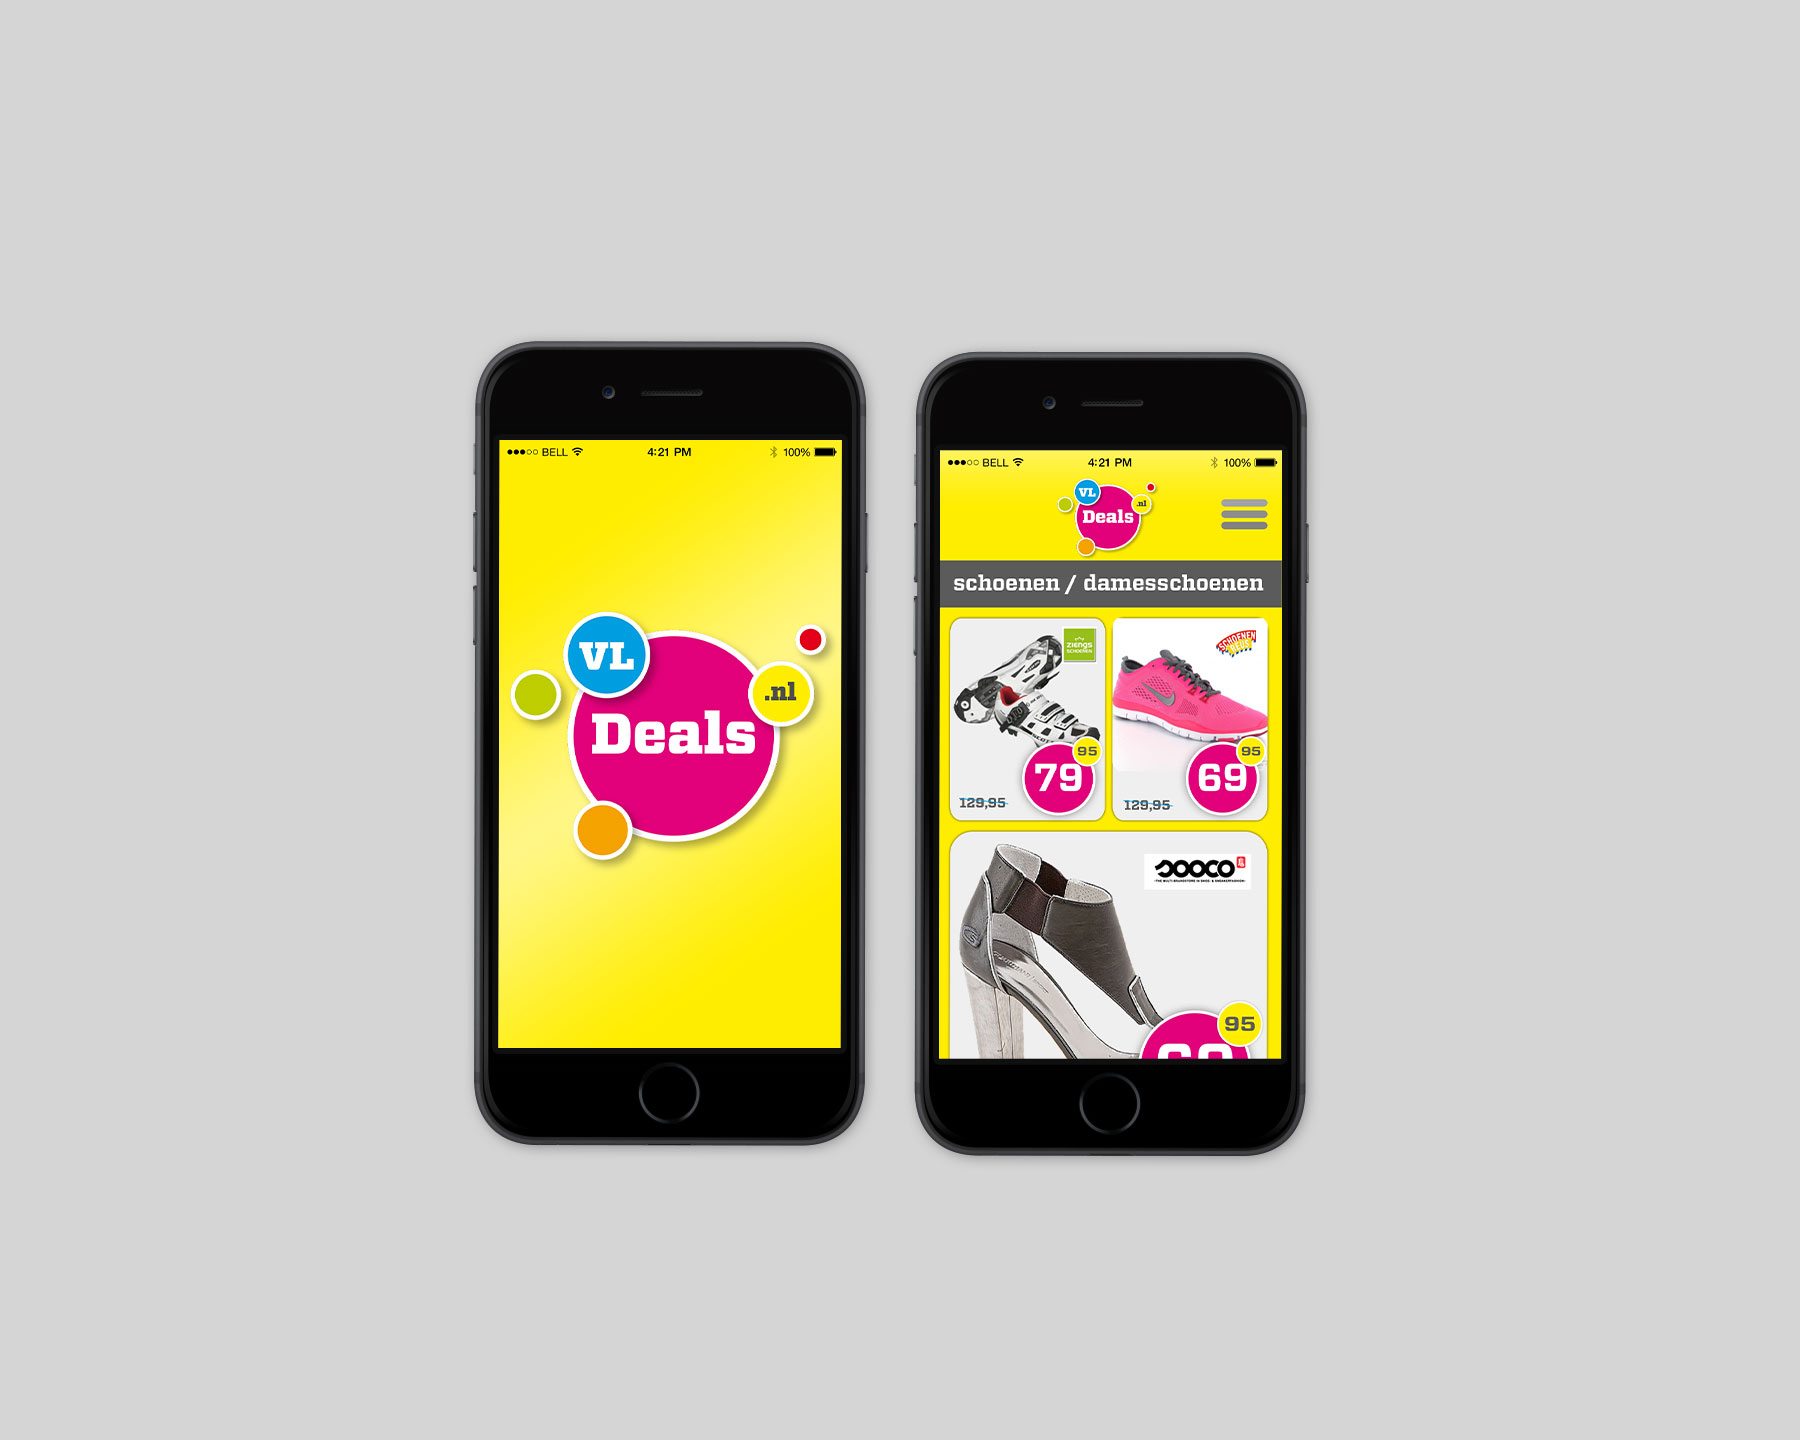 Iphone met app VLDDeals